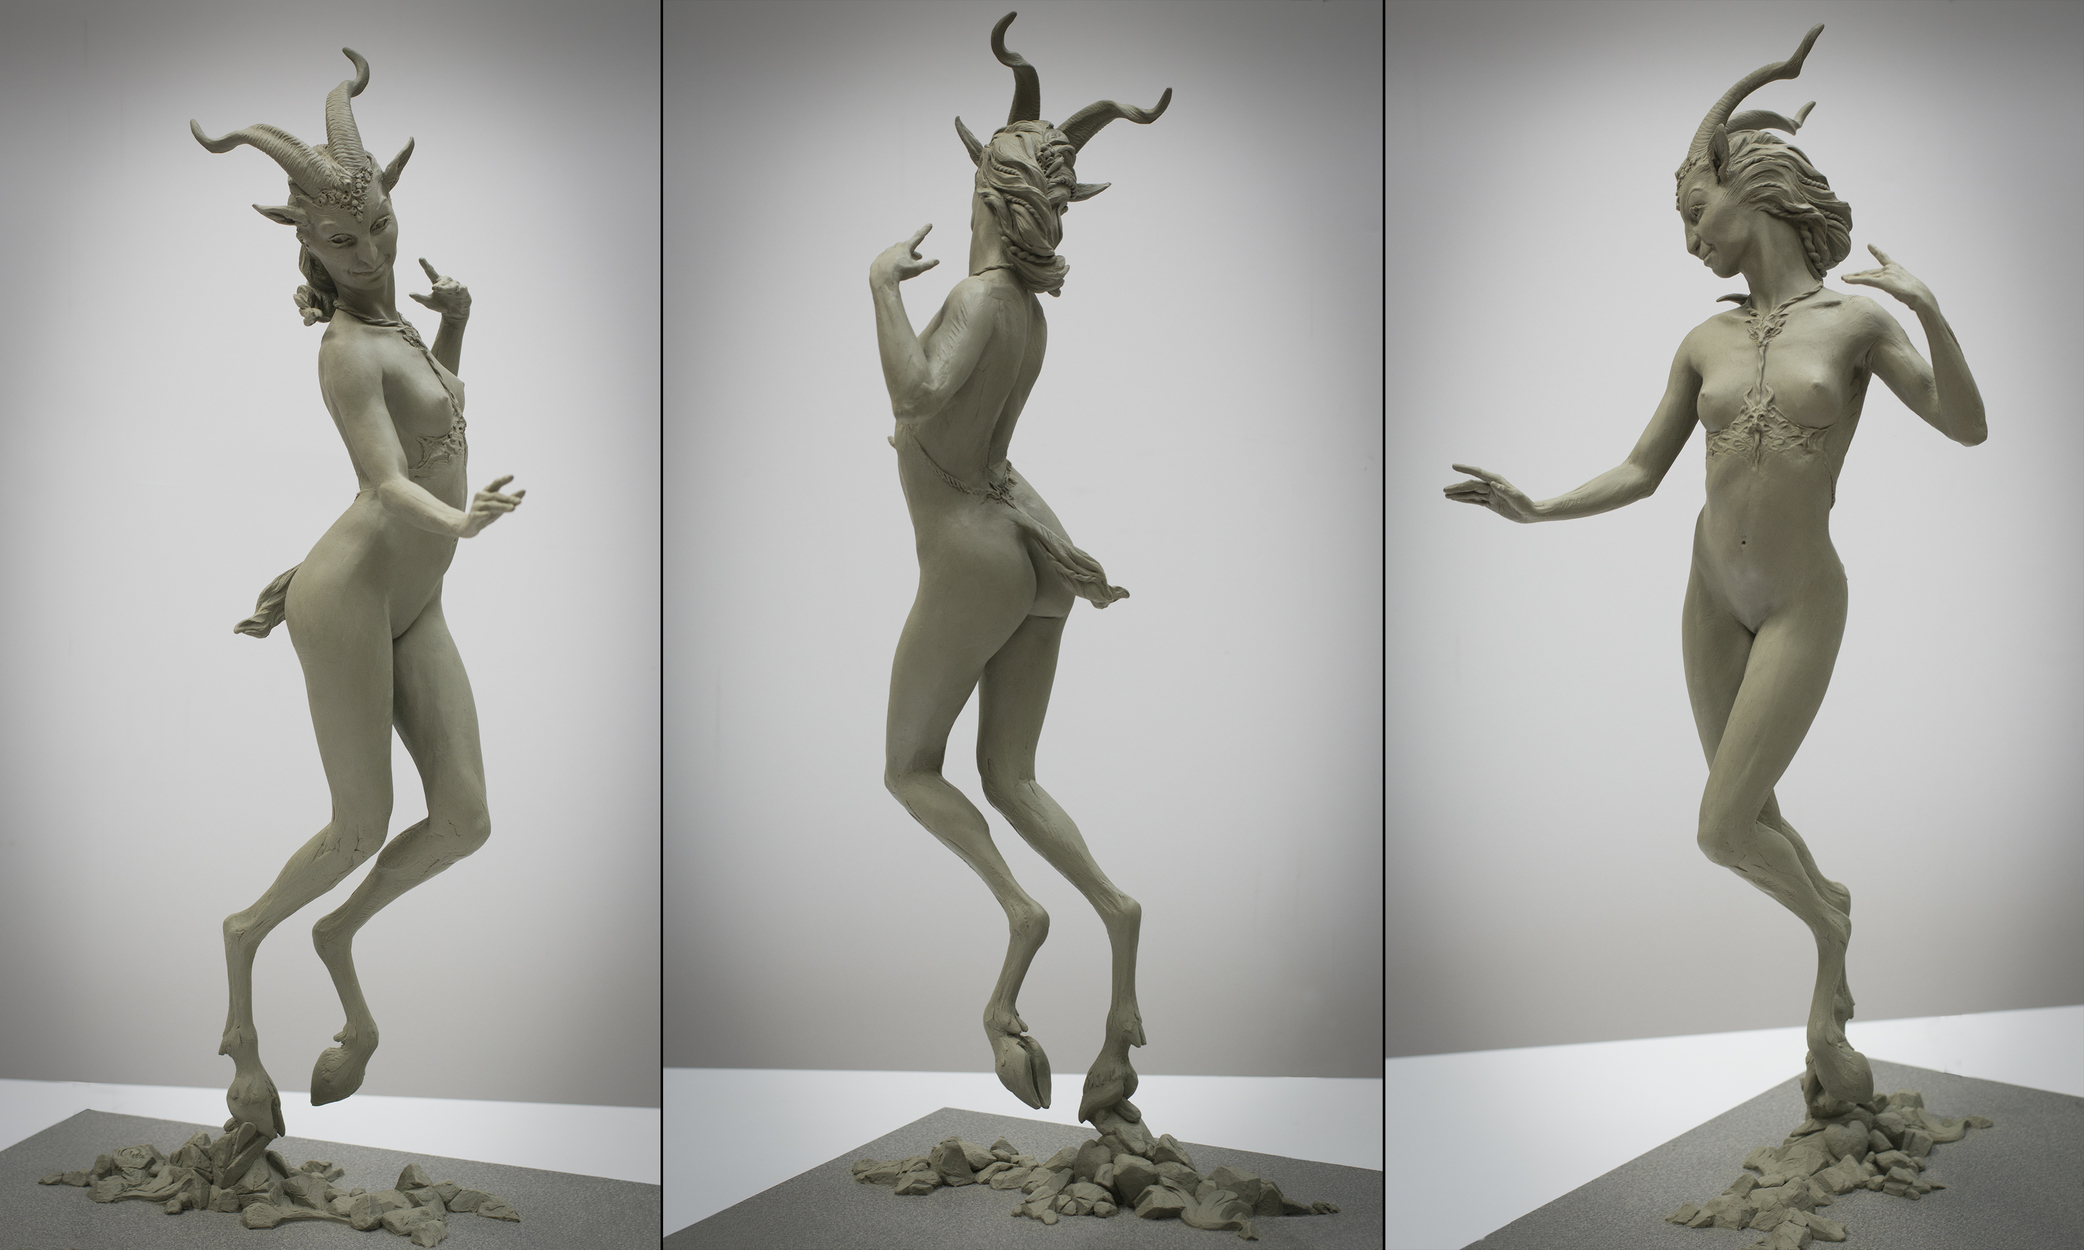 Dancing Faun Artwork by Colin and Kristine Poole